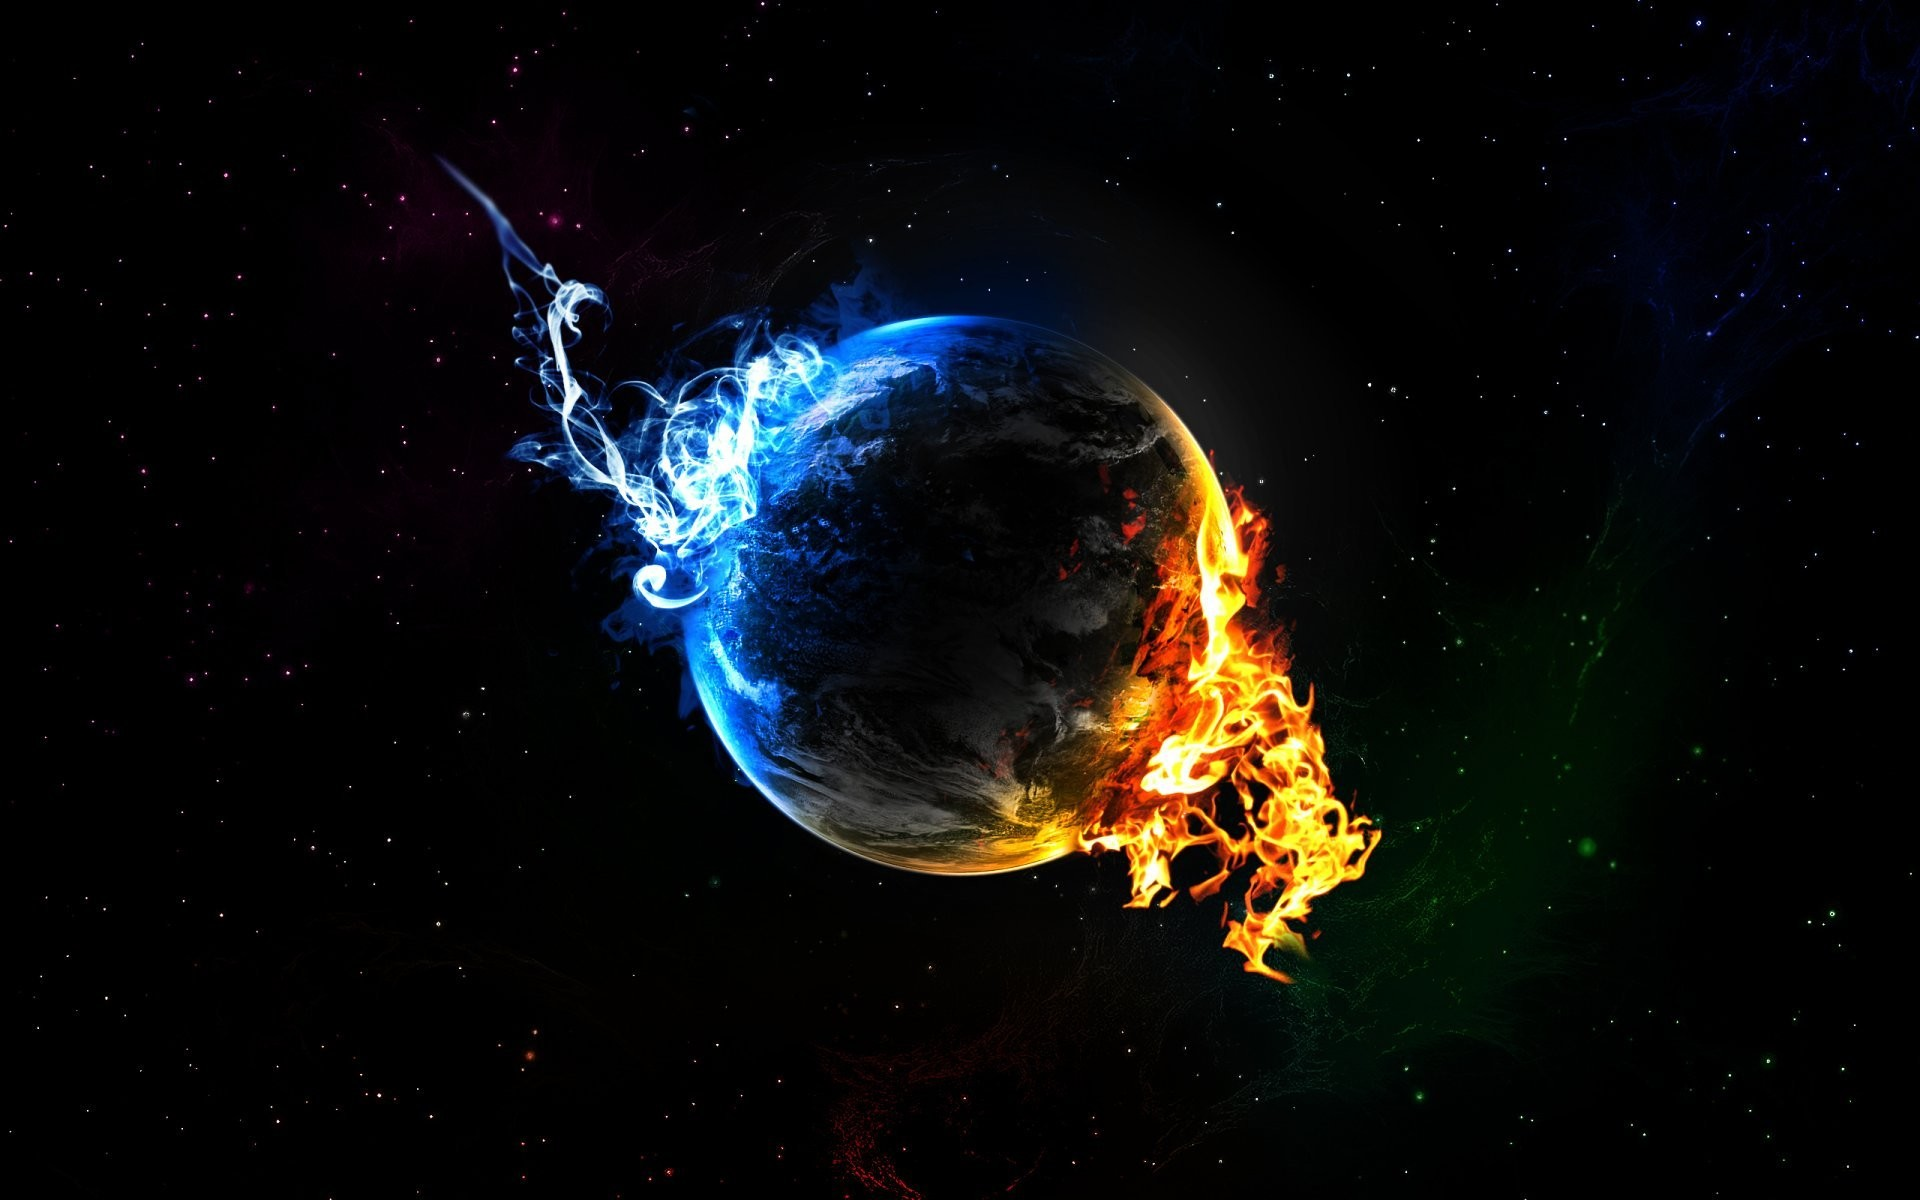 planet star flame blue fire